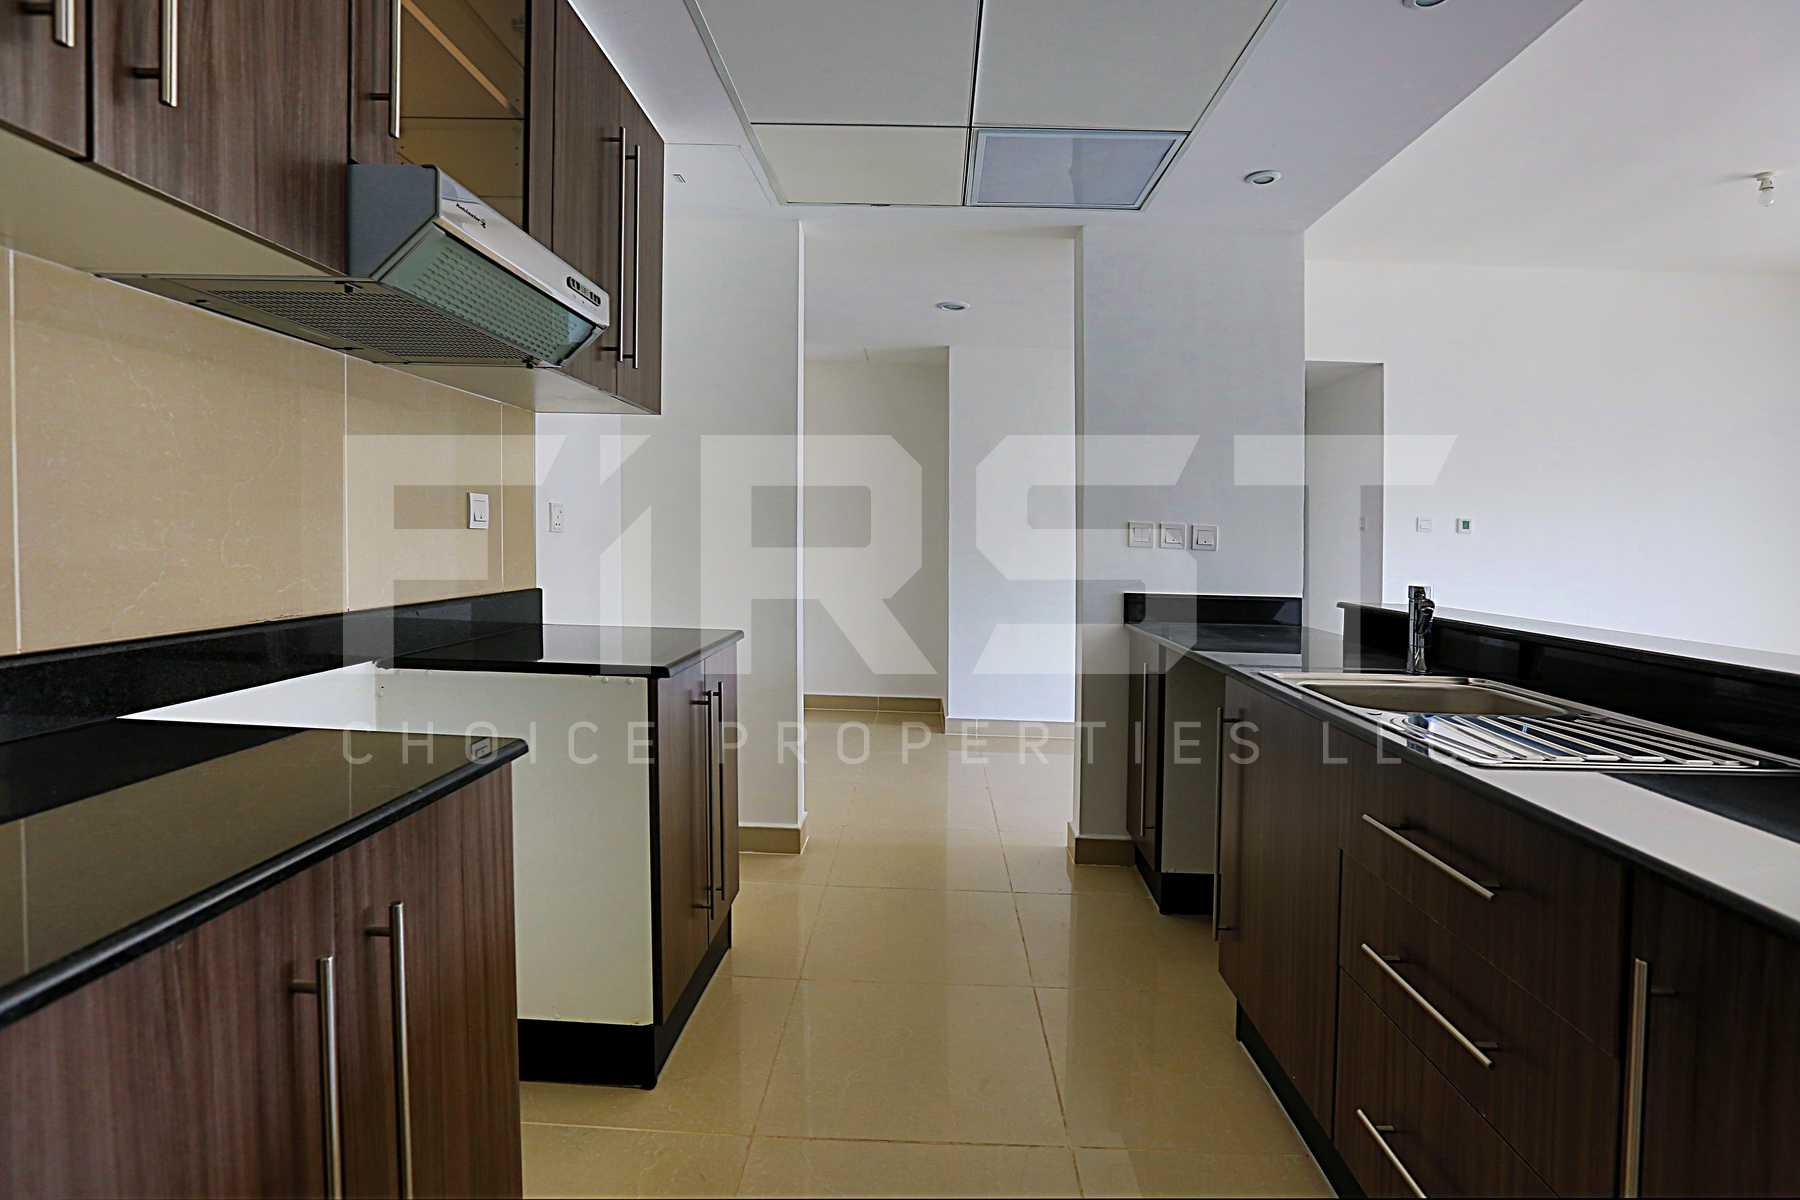 Internal Photo of 2 Bedroom Apartment Type B in Al Reef Downtown Al Reef Abu Dhabi UAE 114 sq.m 1227 (3).jpg